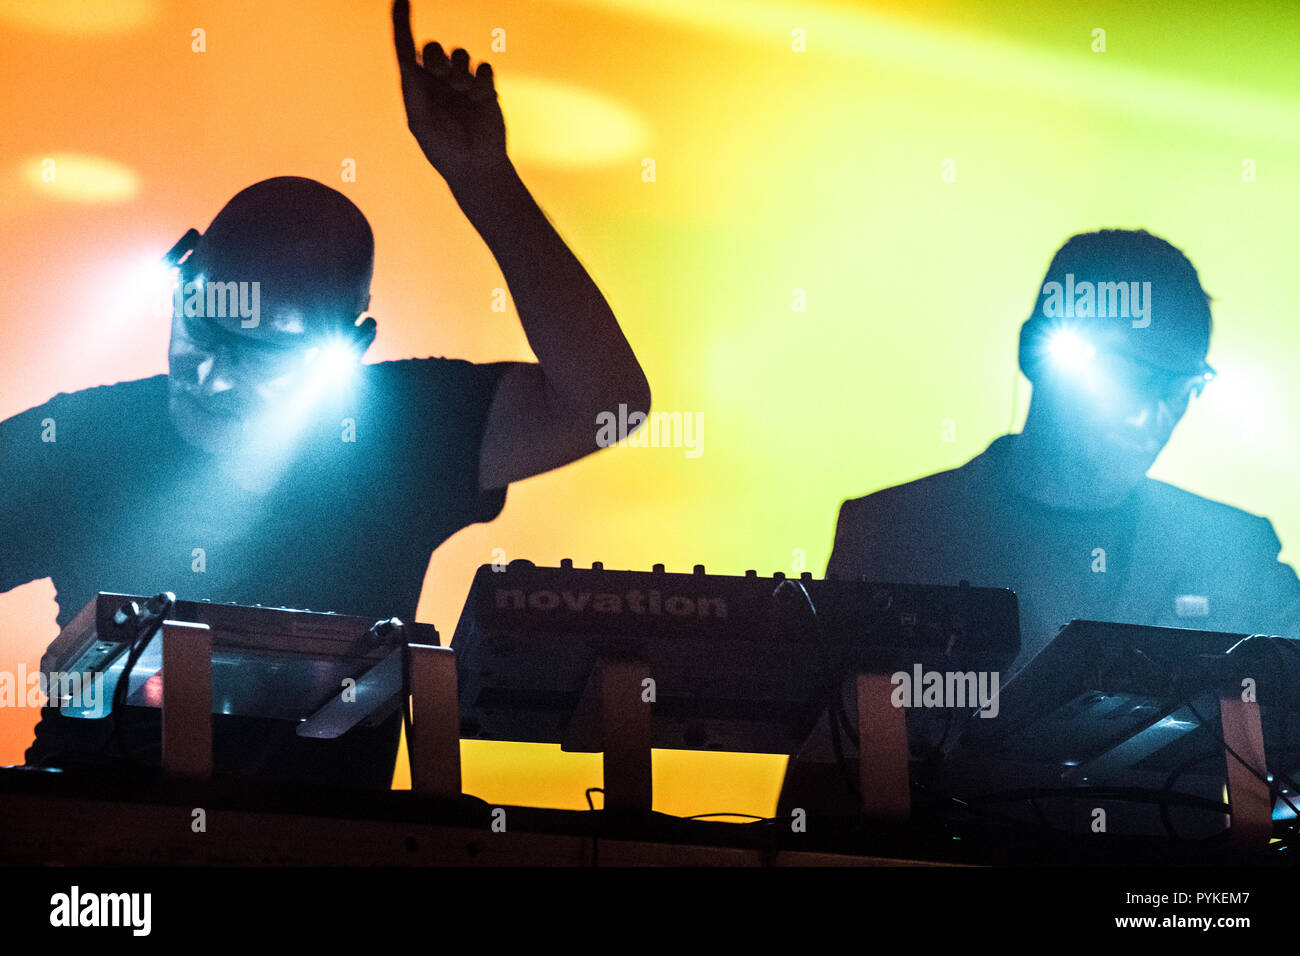 Denmark, Copenhagen - October 28, 2018. The English electronic music duo Orbital performs a live concert at VEGA in Copenhagen. (Photo credit: Gonzales Photo - Flemming Bo Jensen). Credit: Gonzales Photo/Alamy Live News - Stock Image